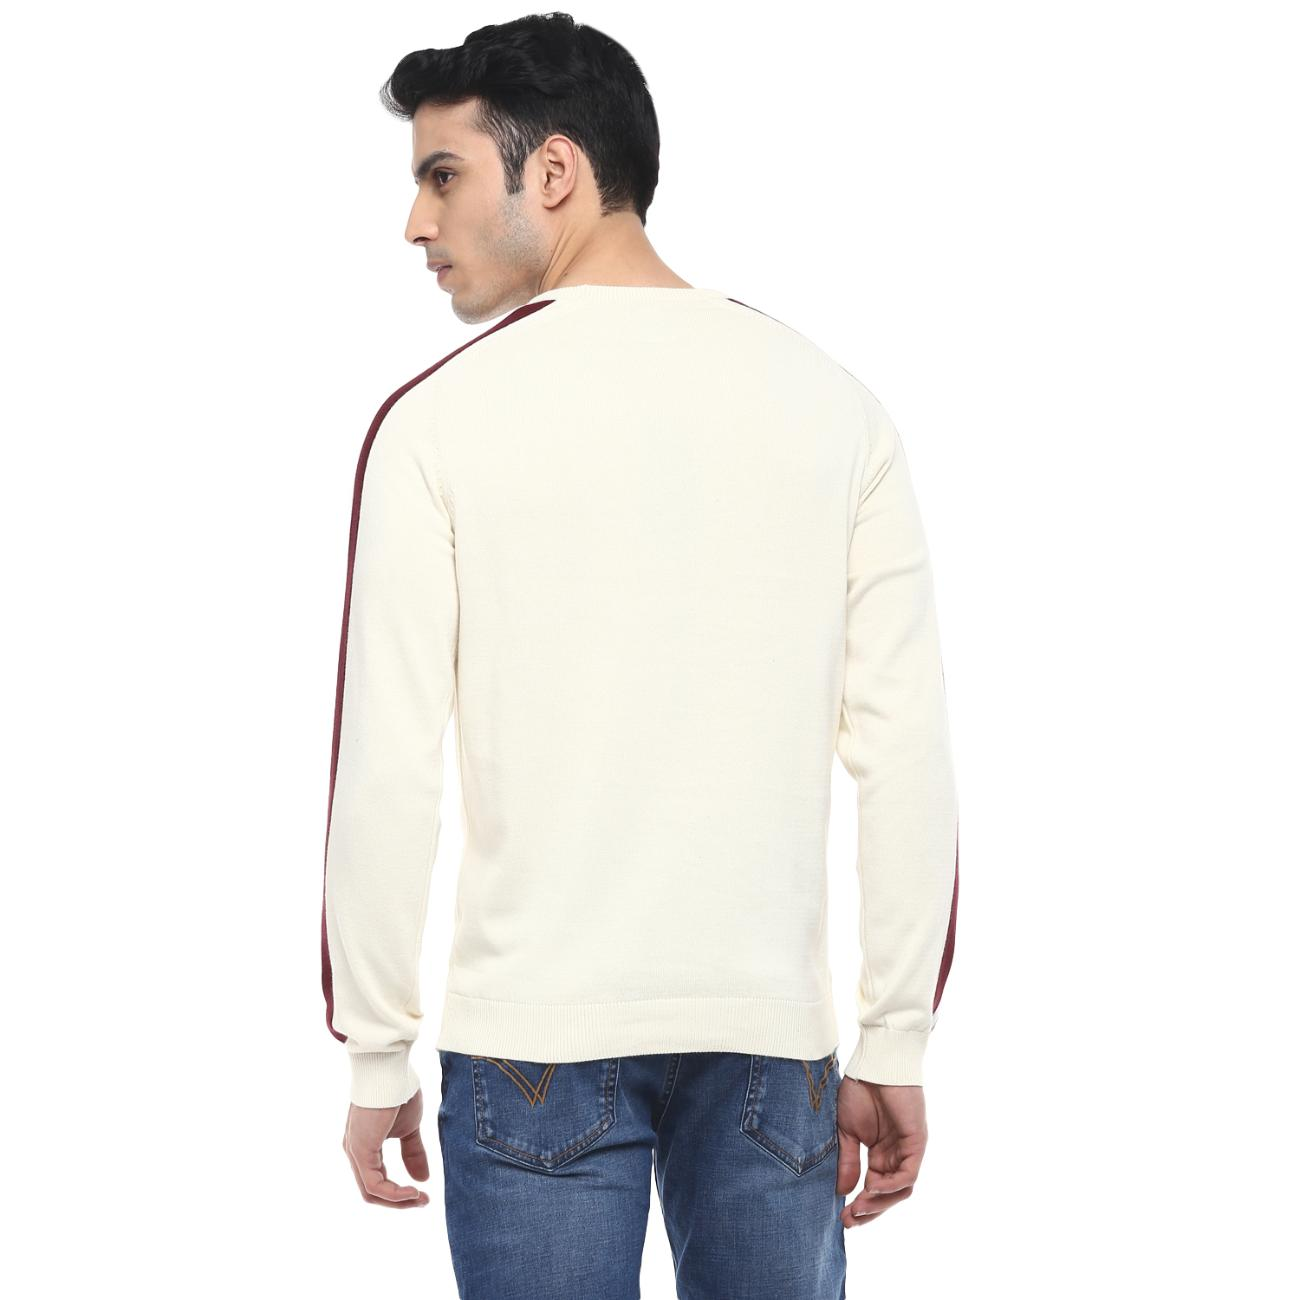 Buy Men's Off-white Casual Sweater at Red Chief